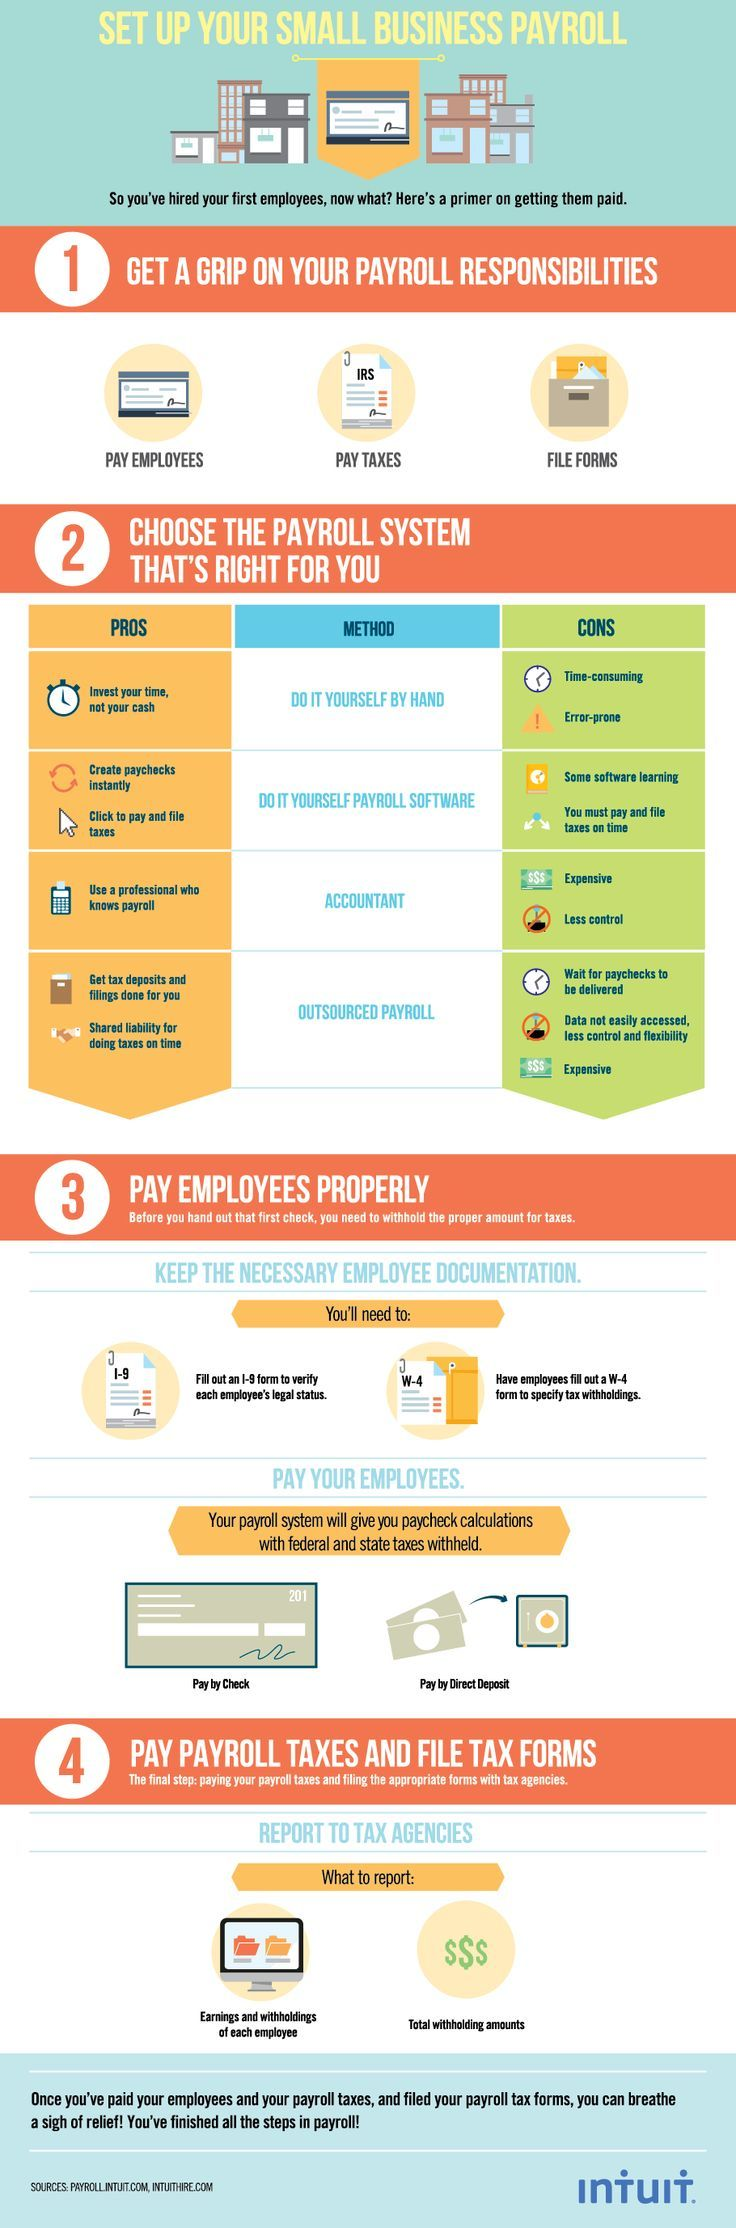 Best Payroll Tips Images On   Accounting Business